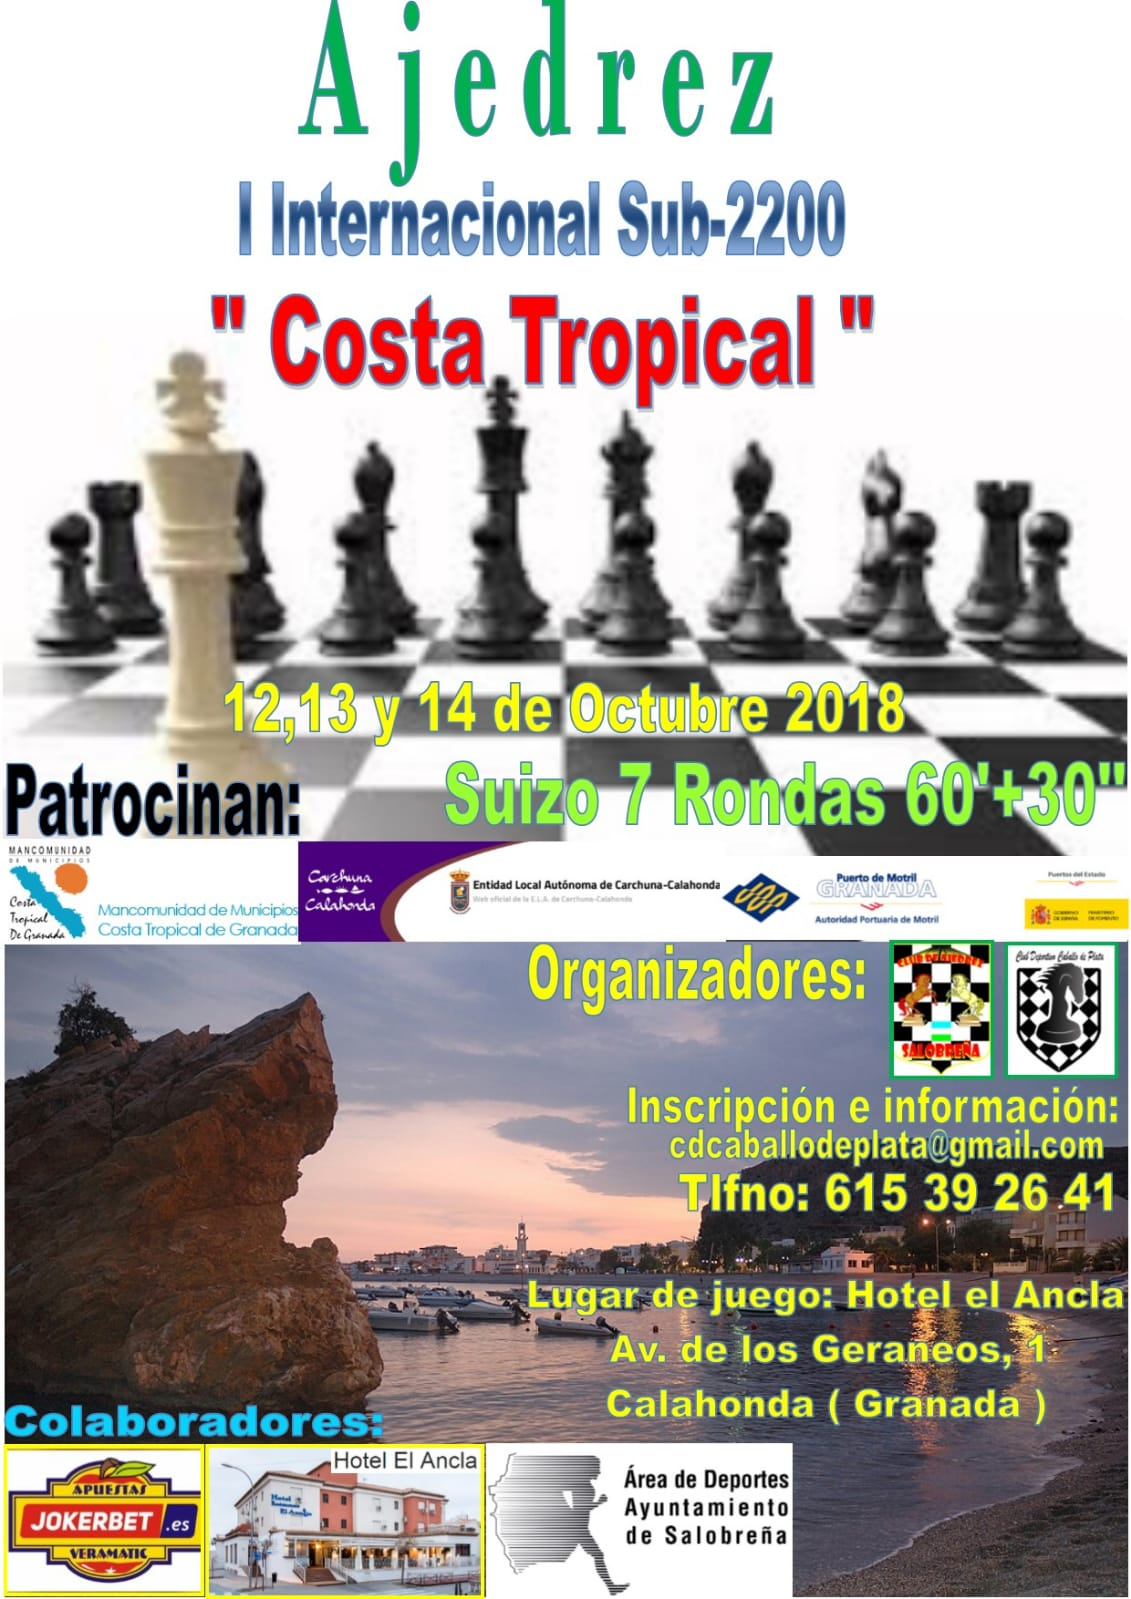 I Internacional Sub 2200 Costa Tropical de Granada...